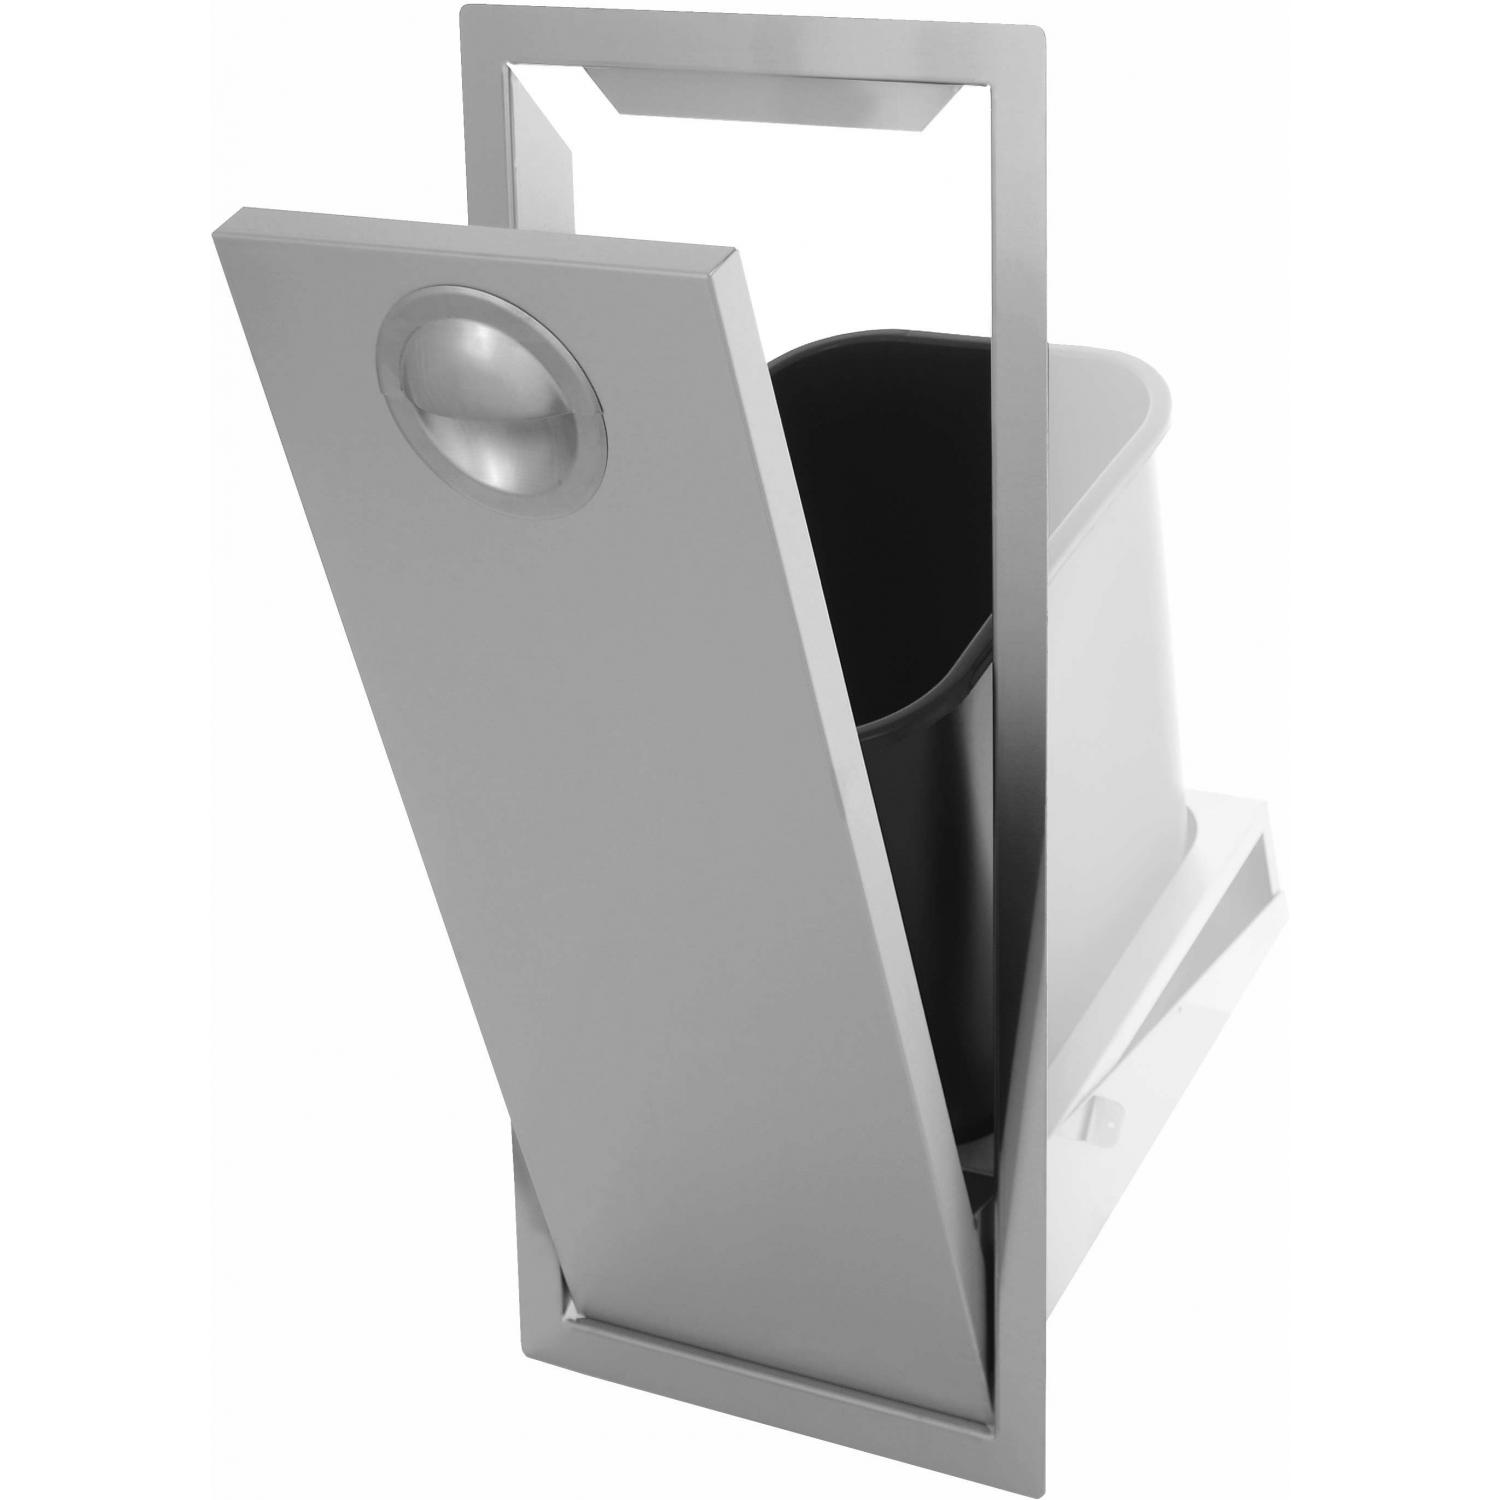 Bbqguys.com Portofino Series Tilt-out Stainless Steel Trash Bin